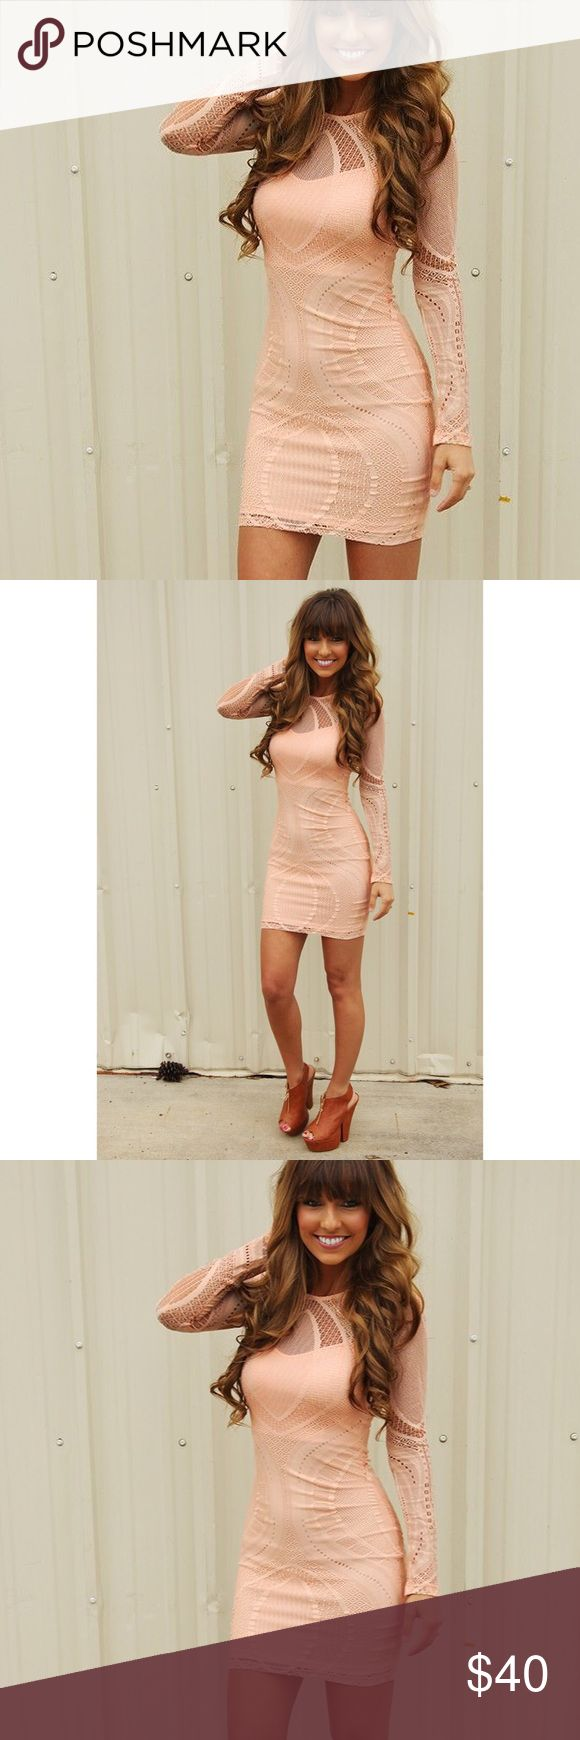 NWOT Blush Long Sleeve Dress NWOT!! Brand new, never been worn, perfect condition! Blush colored long sleeve dress originally purchased online from Shop Hope's. Runs true to size. Mystic Dresses Long Sleeve